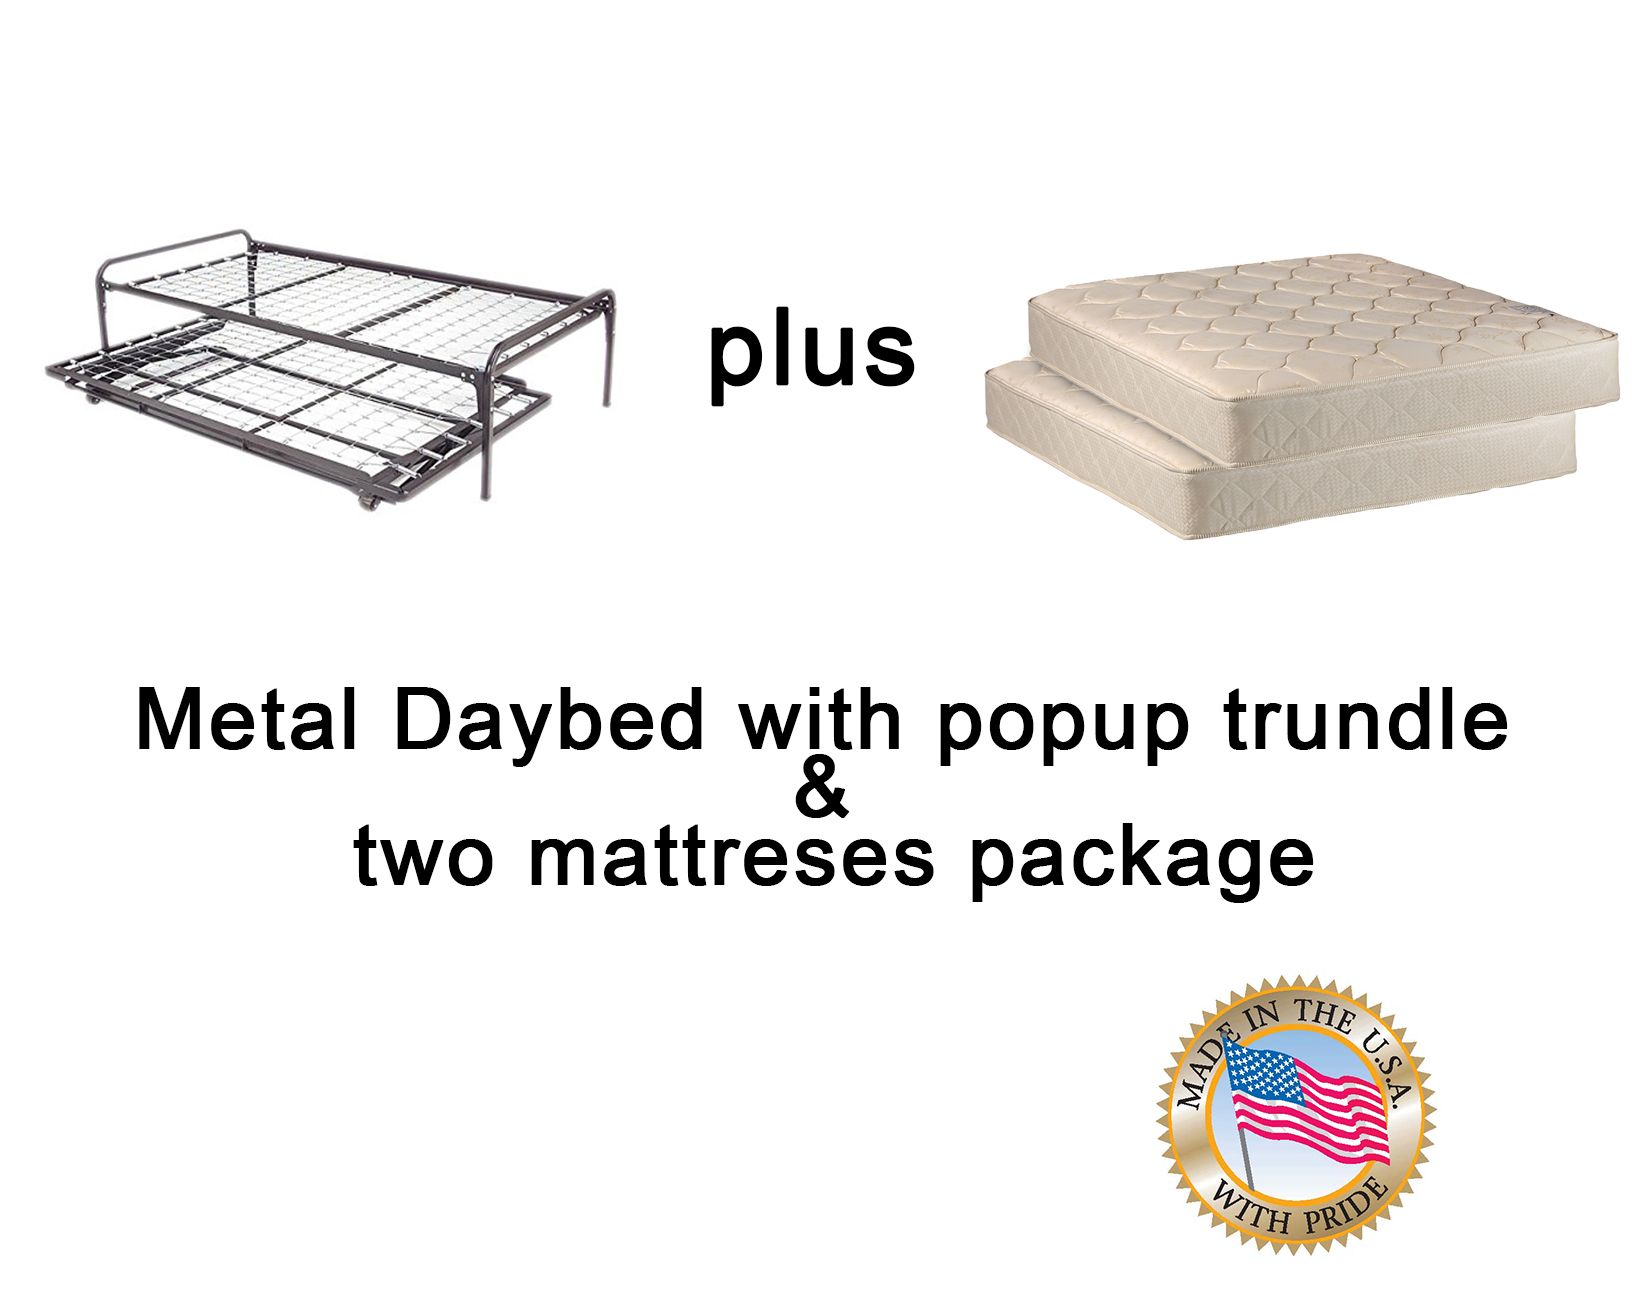 Dream Solutions Metal Day Bed Daybed Frame And Pop Up Trundle With Great Soft Mattresses Included Package Deal Twin Walmart Com Pop Up Trundle Daybed Trundle Twin size bed with mattress included